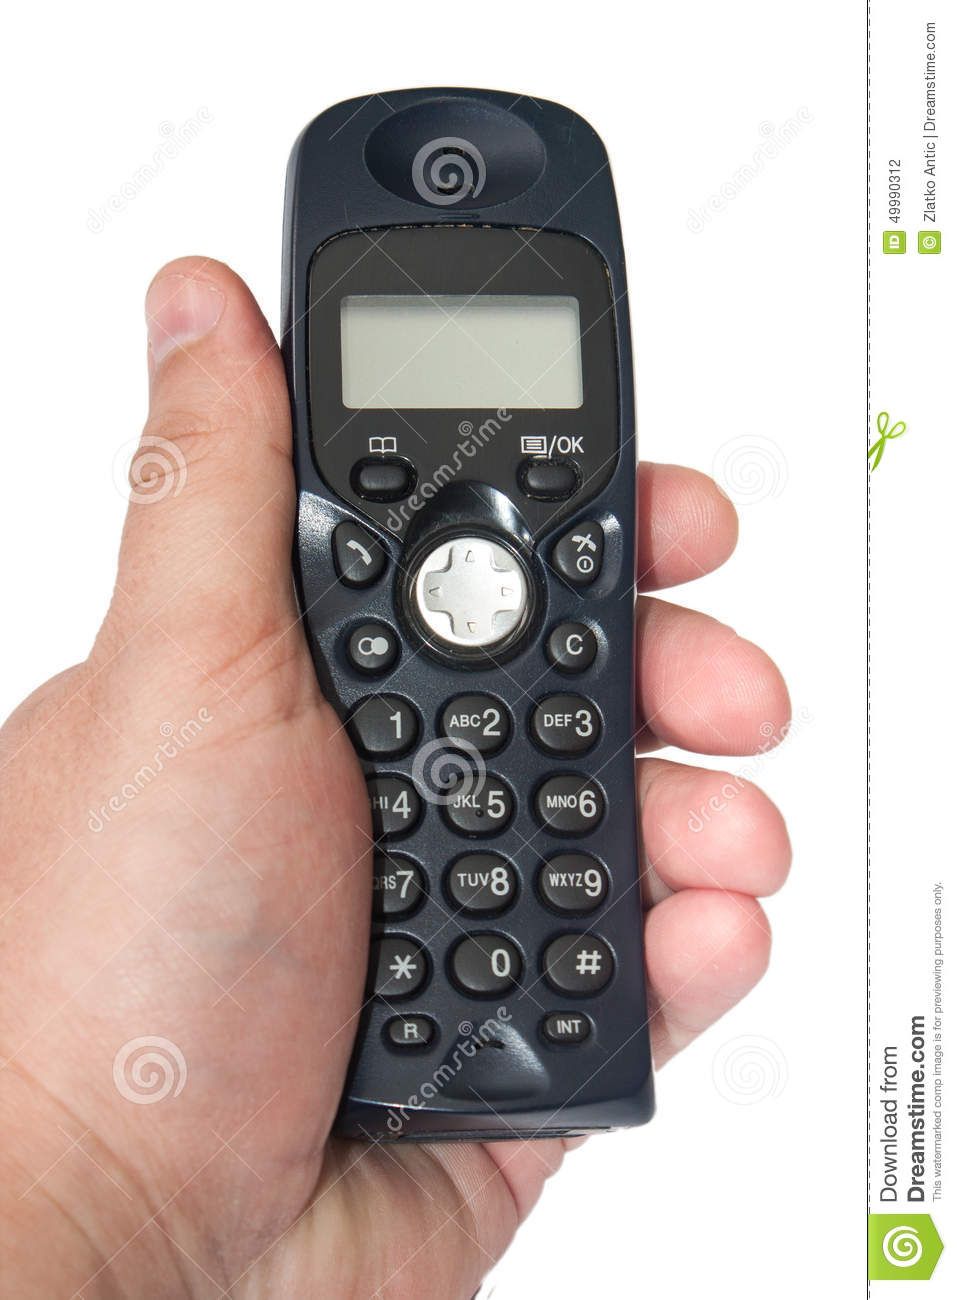 Black cordless phone in the hand on the white background